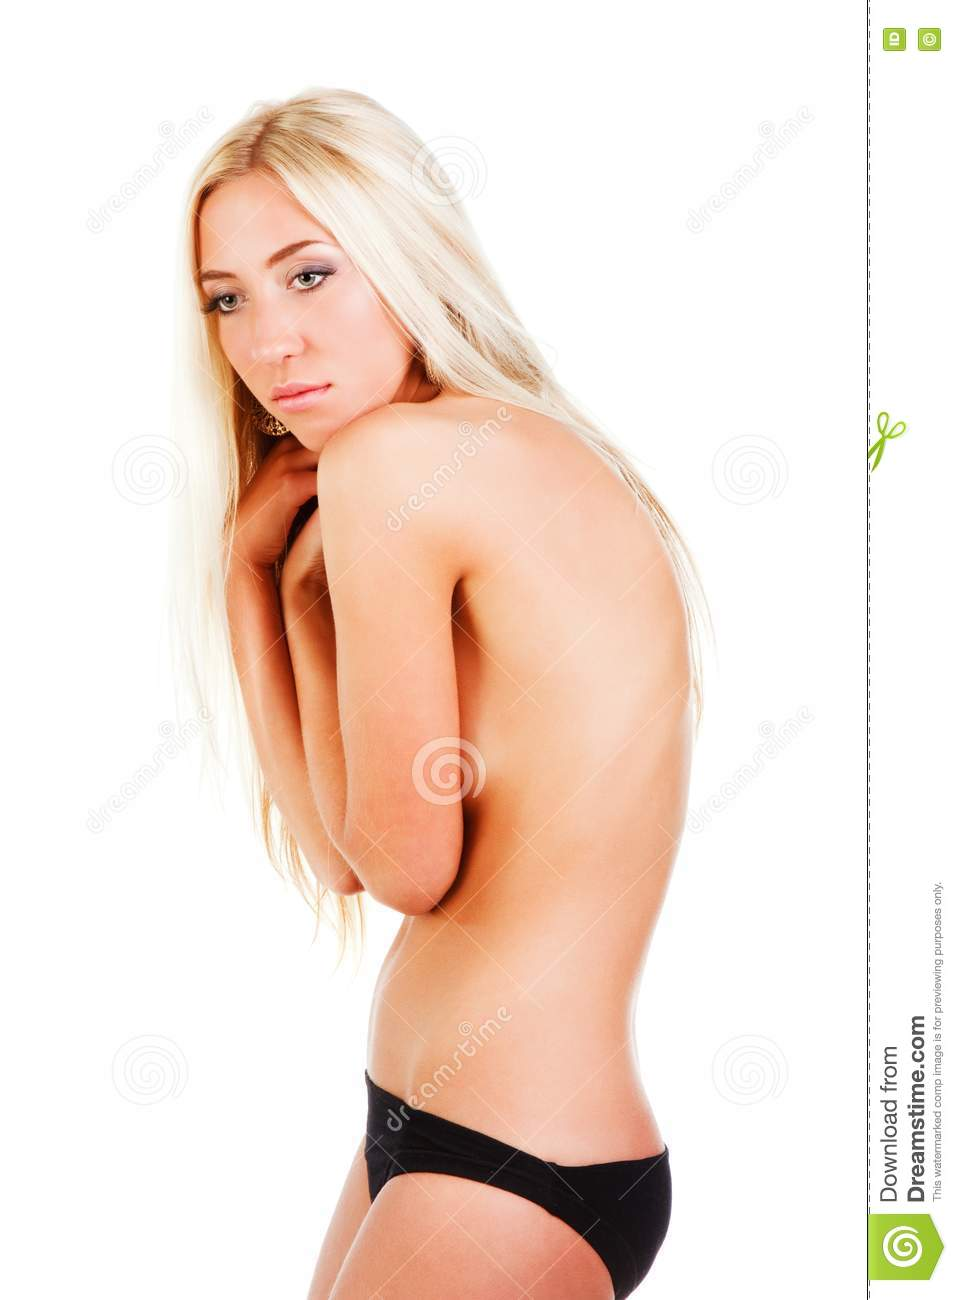 Picture Of A Beautiful Seduce Young Topless Girl On White Background